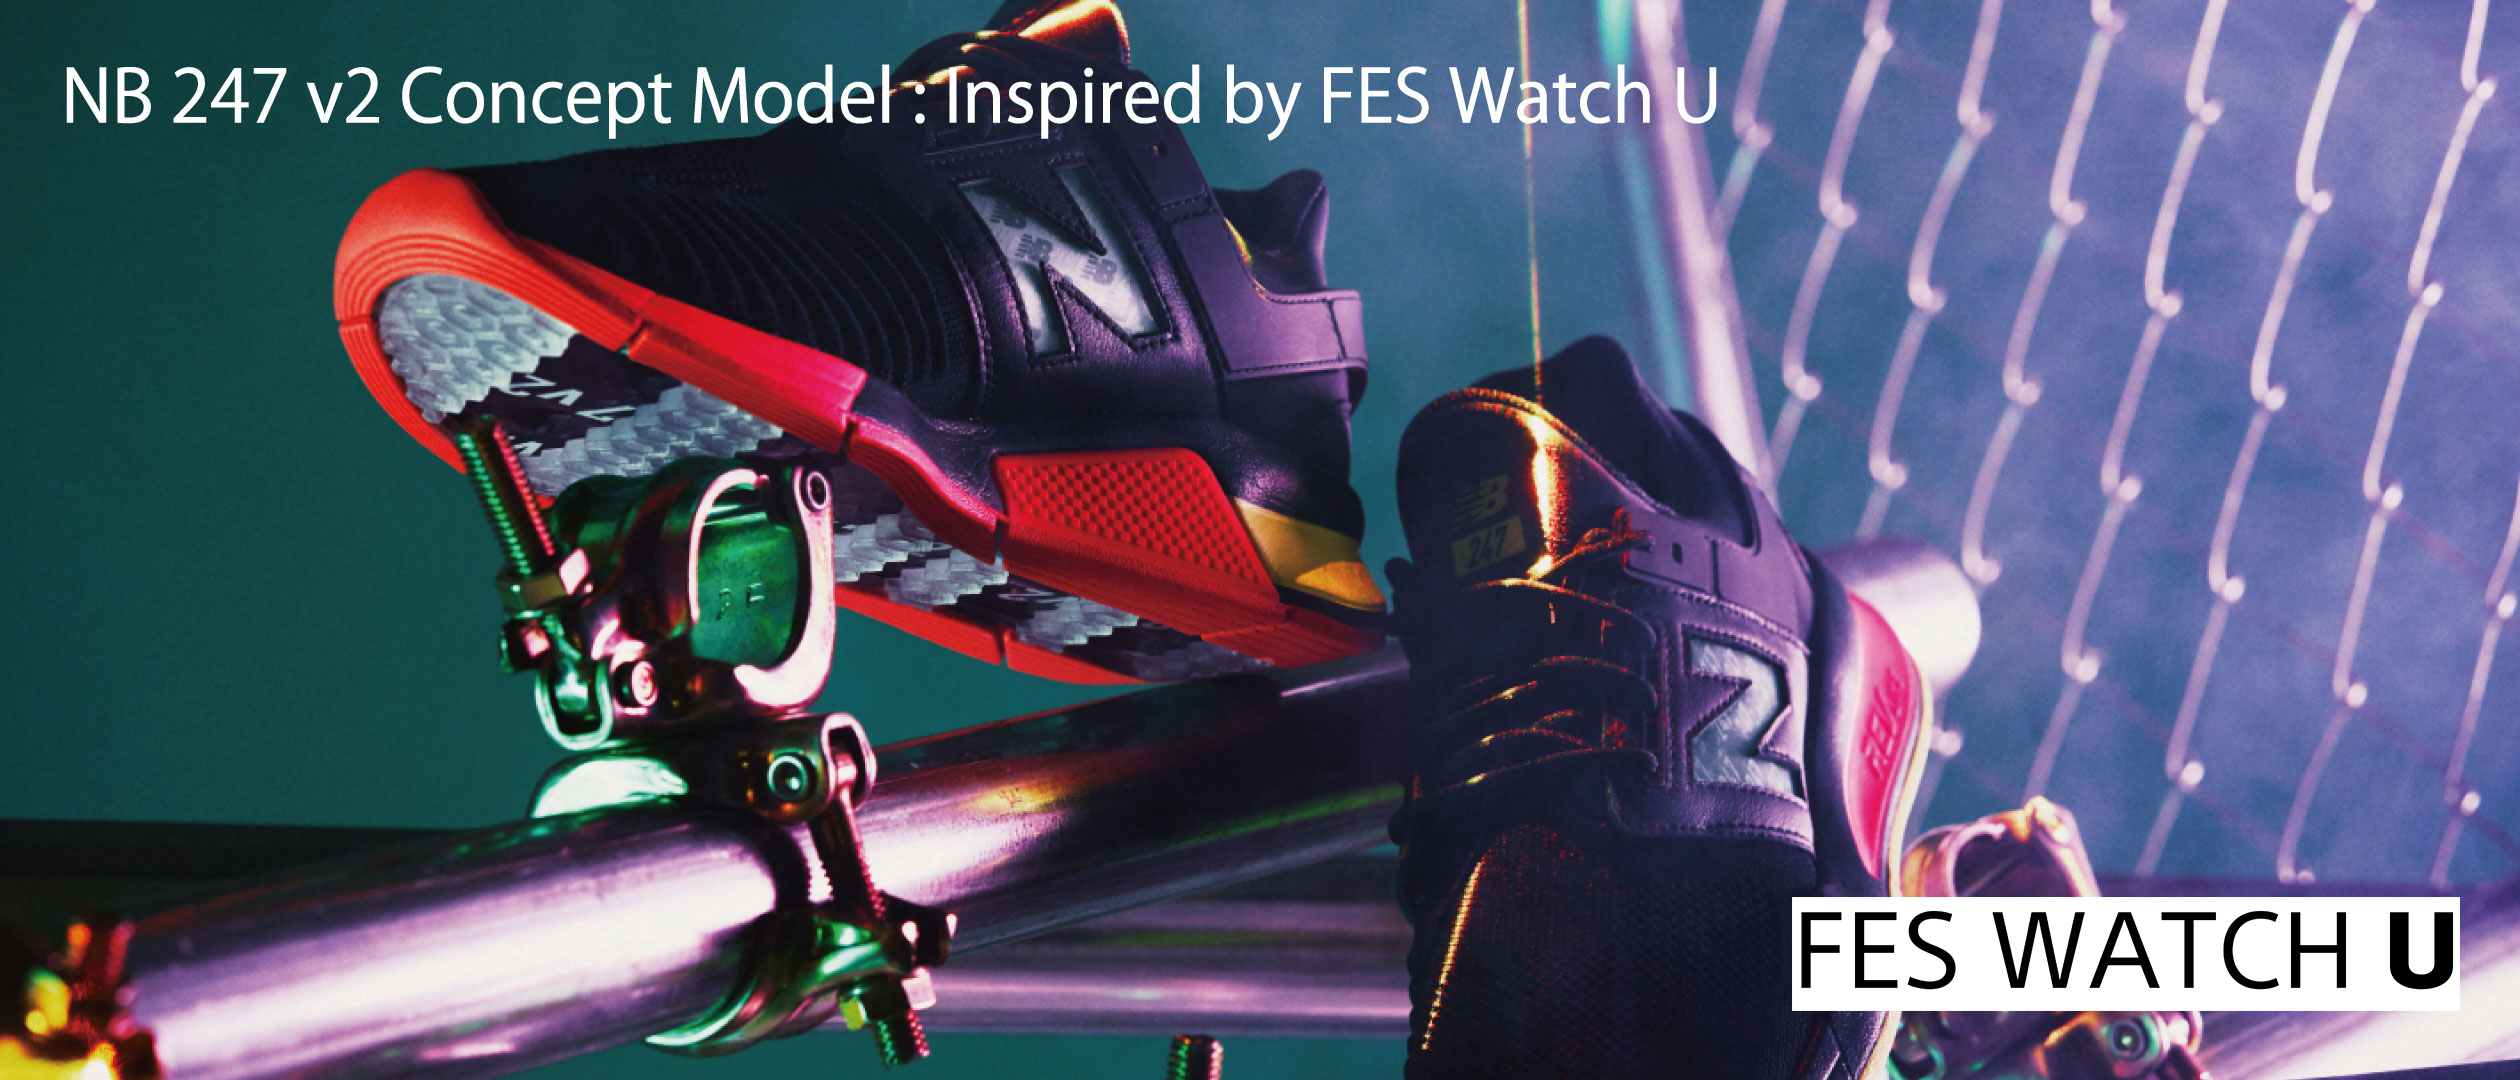 NB 247 v2 Concept Model:Inspired by FES Watch U FES / WATCH U